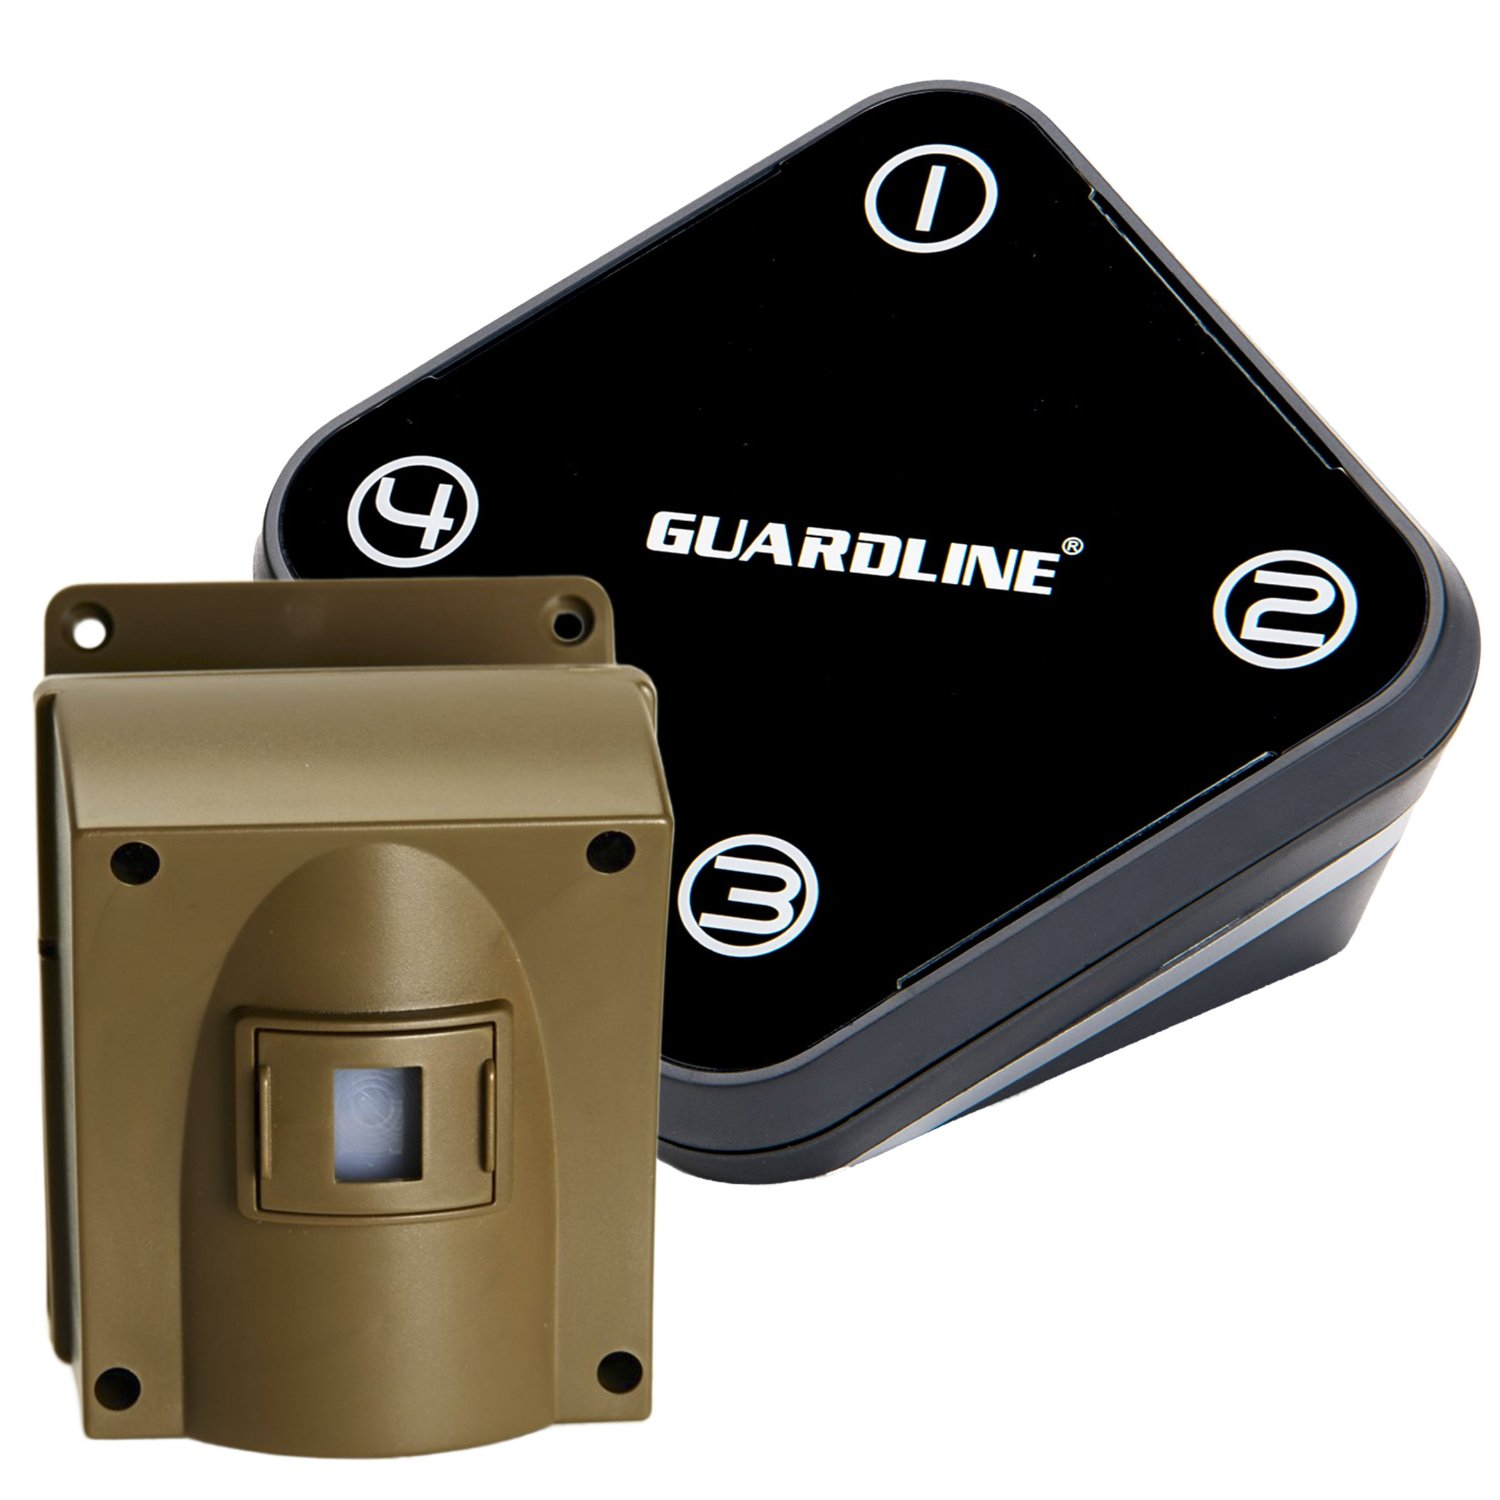 Guardline Wireless Driveway Alarm Professional Outdoor Motion Sensor & Detector Alert System